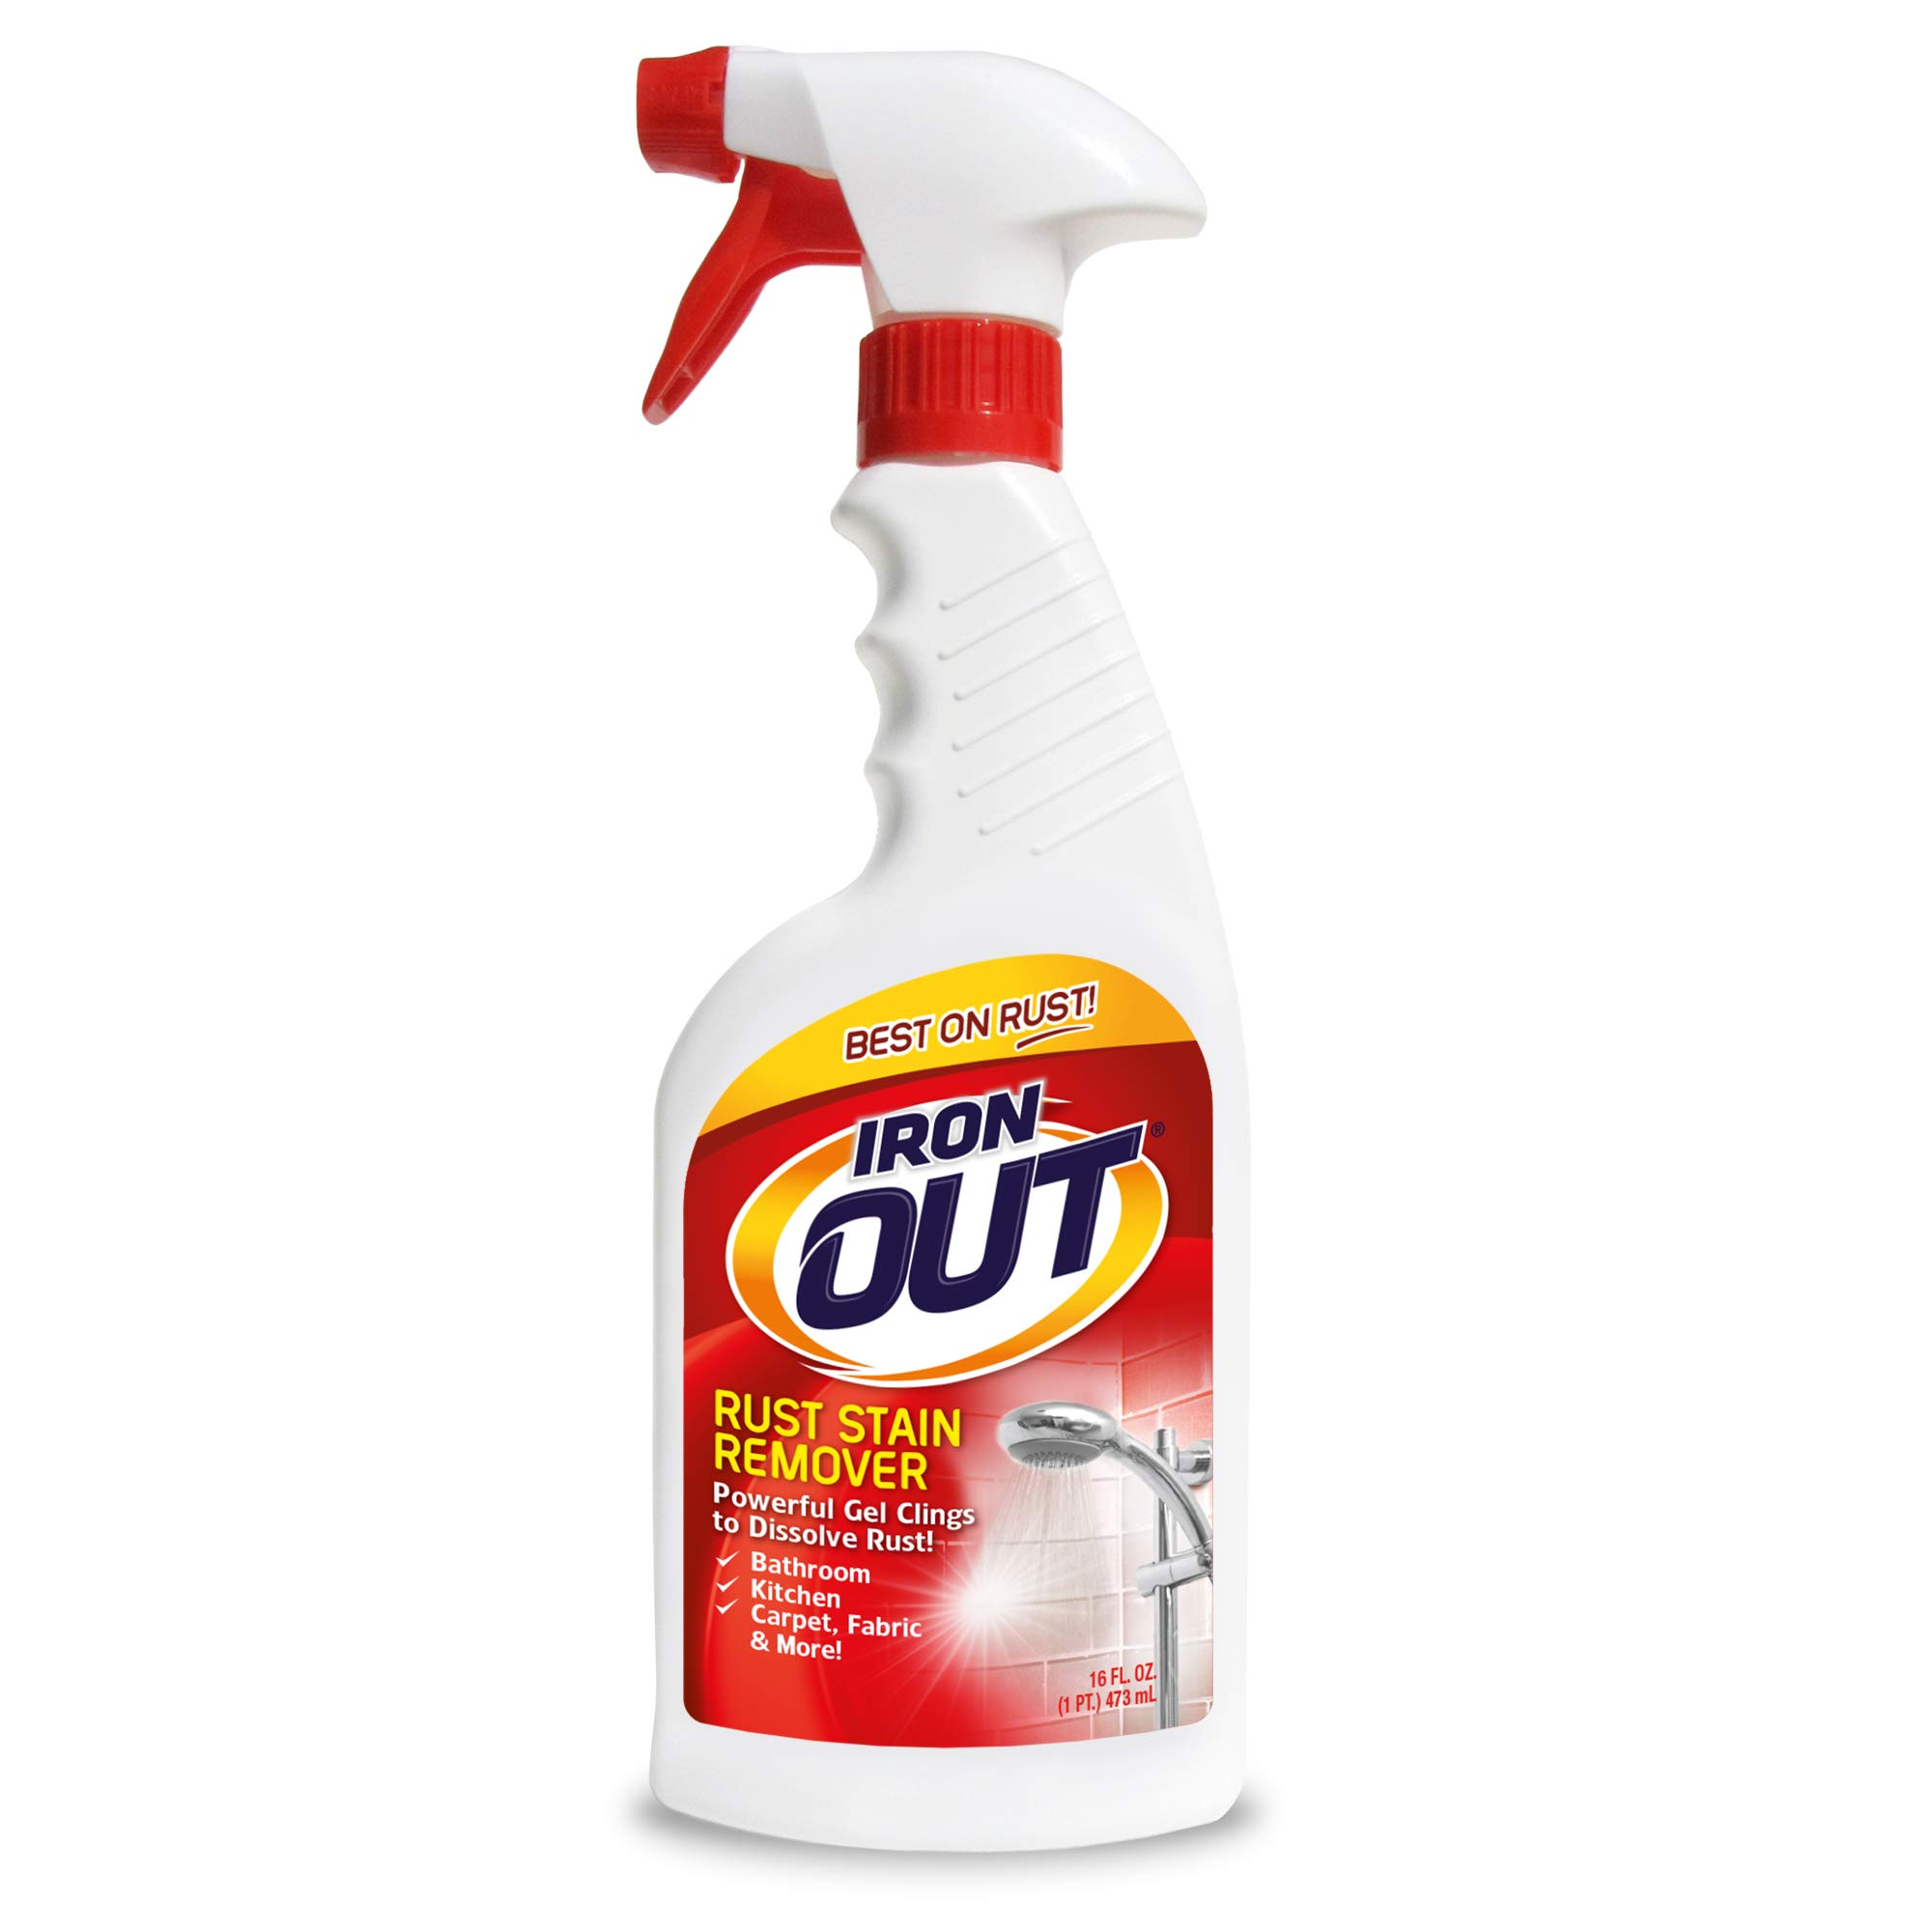 Iron OUT Rust Stain Remover Spray Gel, 16 Fl. Oz. Bottle, 6 Pack by Summit Brands (Image #1)